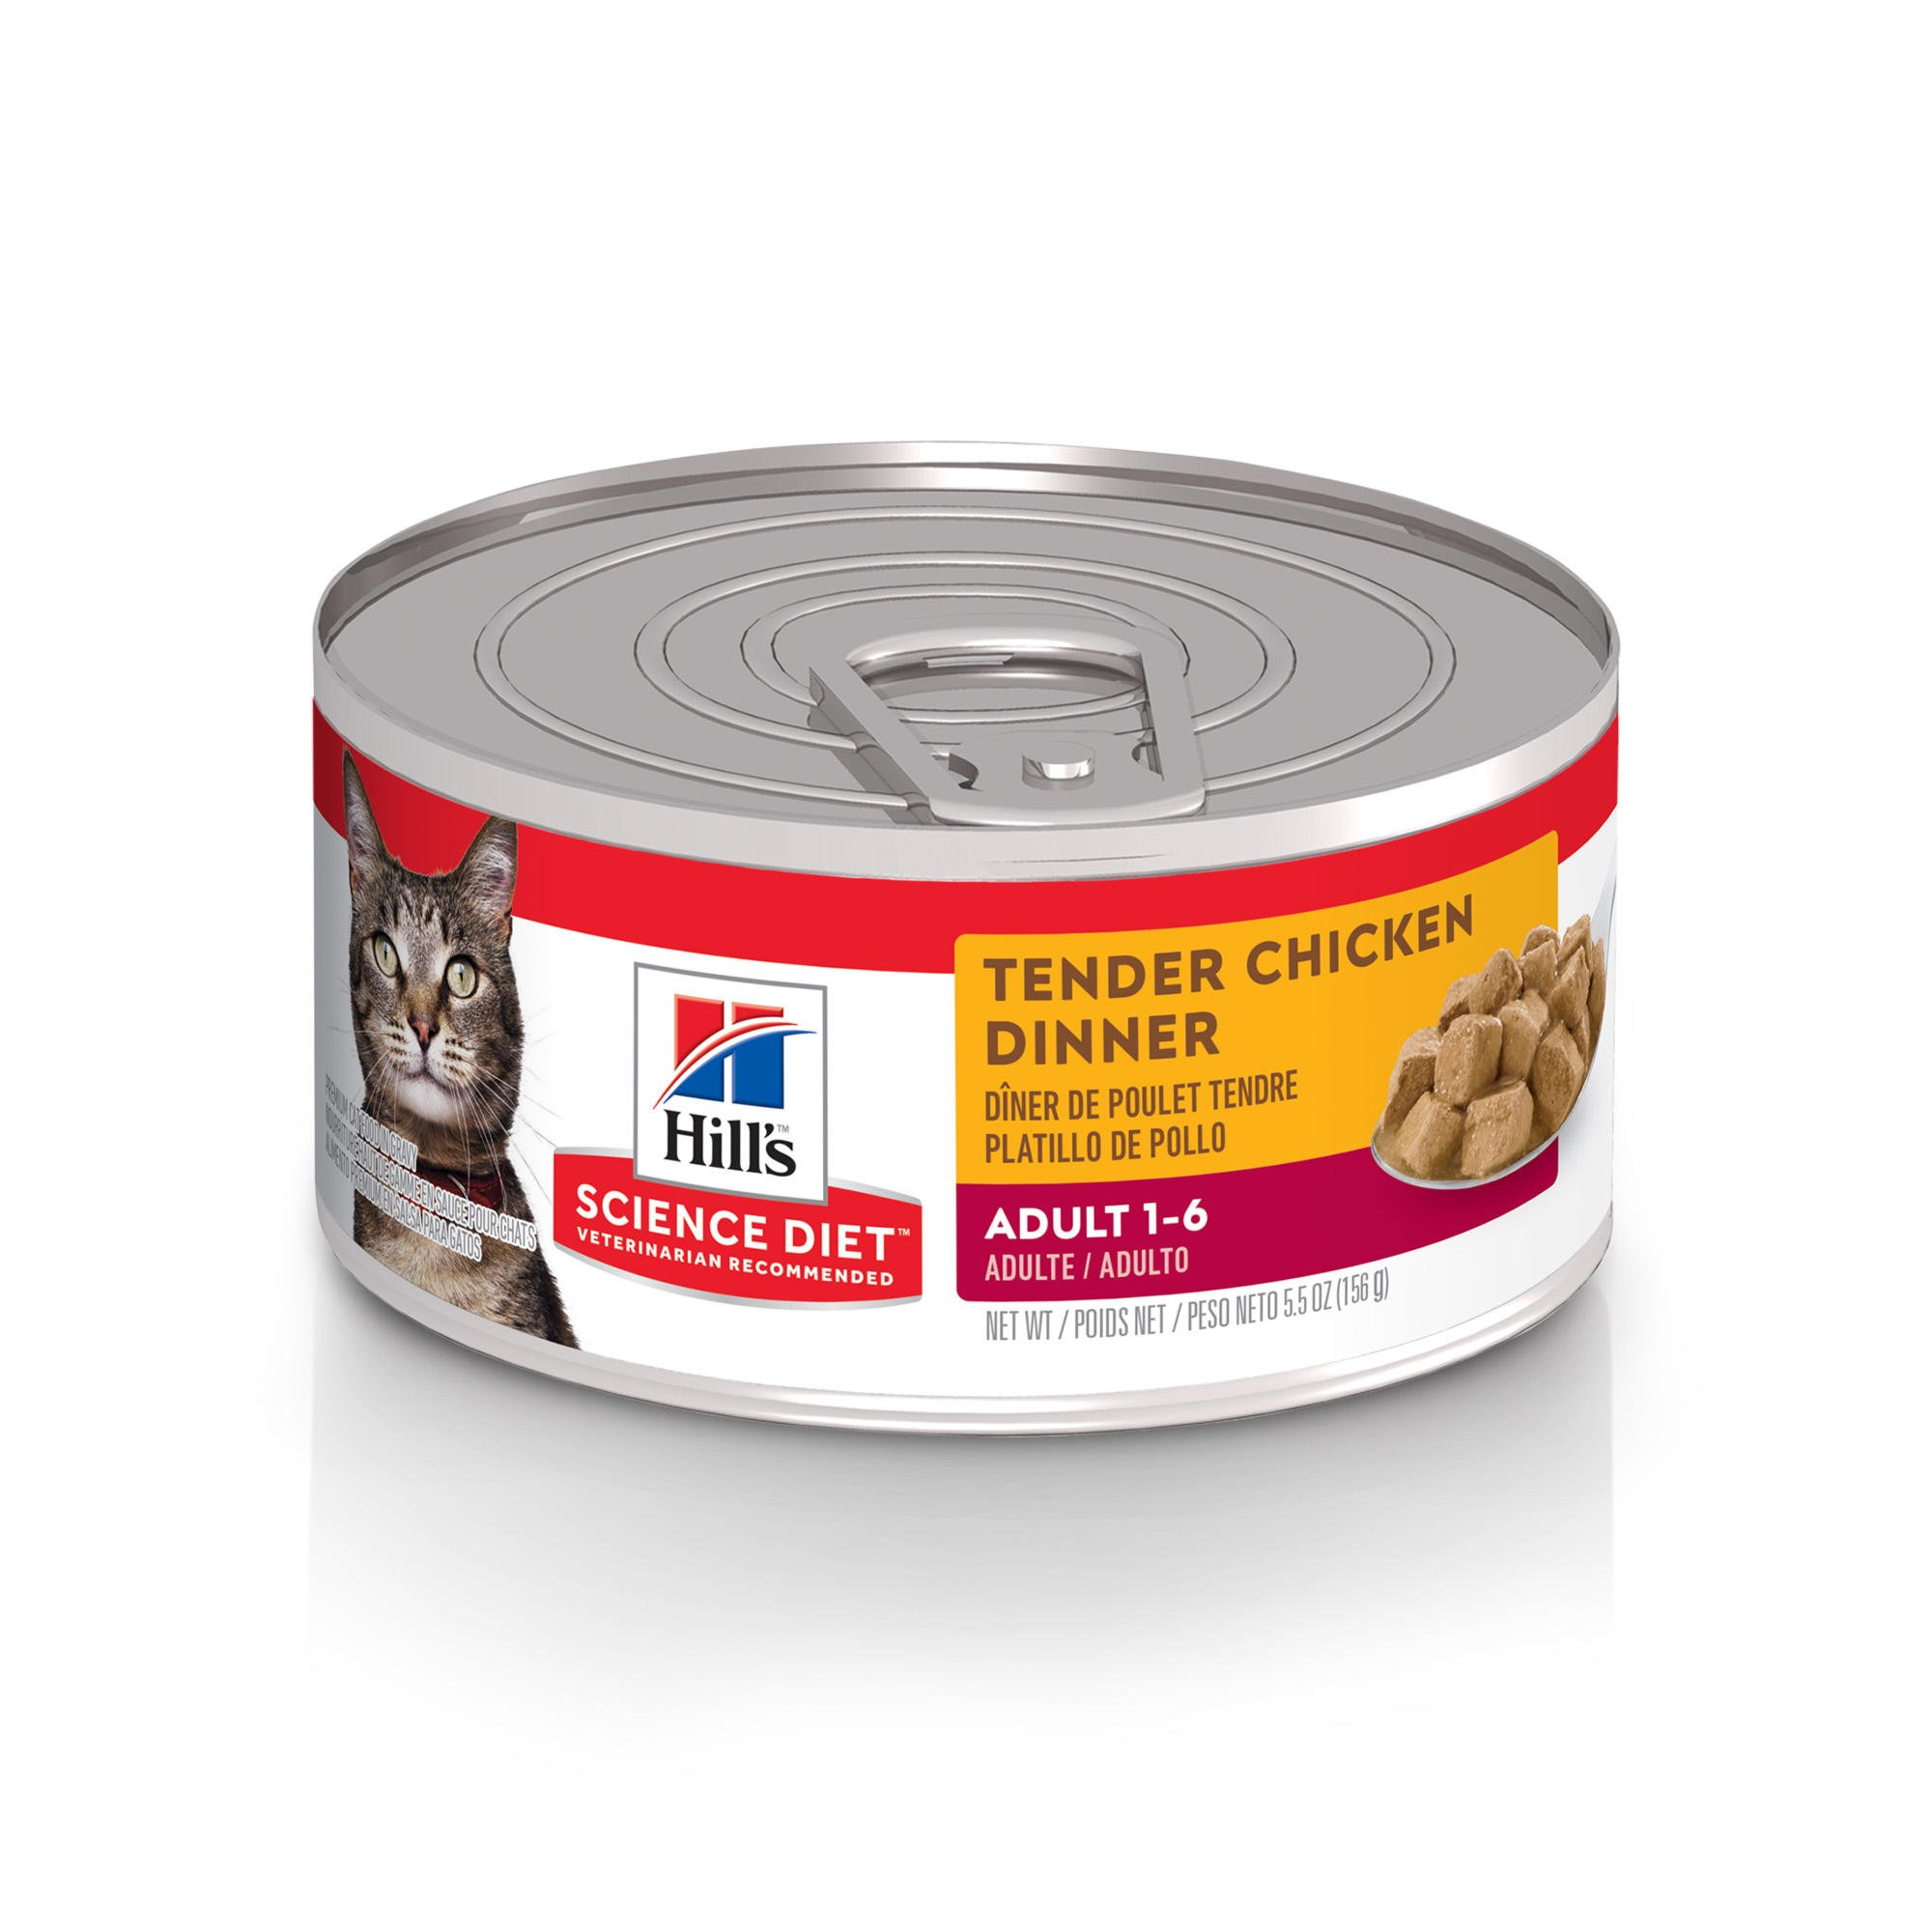 Hill's Science Diet Tender Chicken Dinner Adult Canned Cat Food